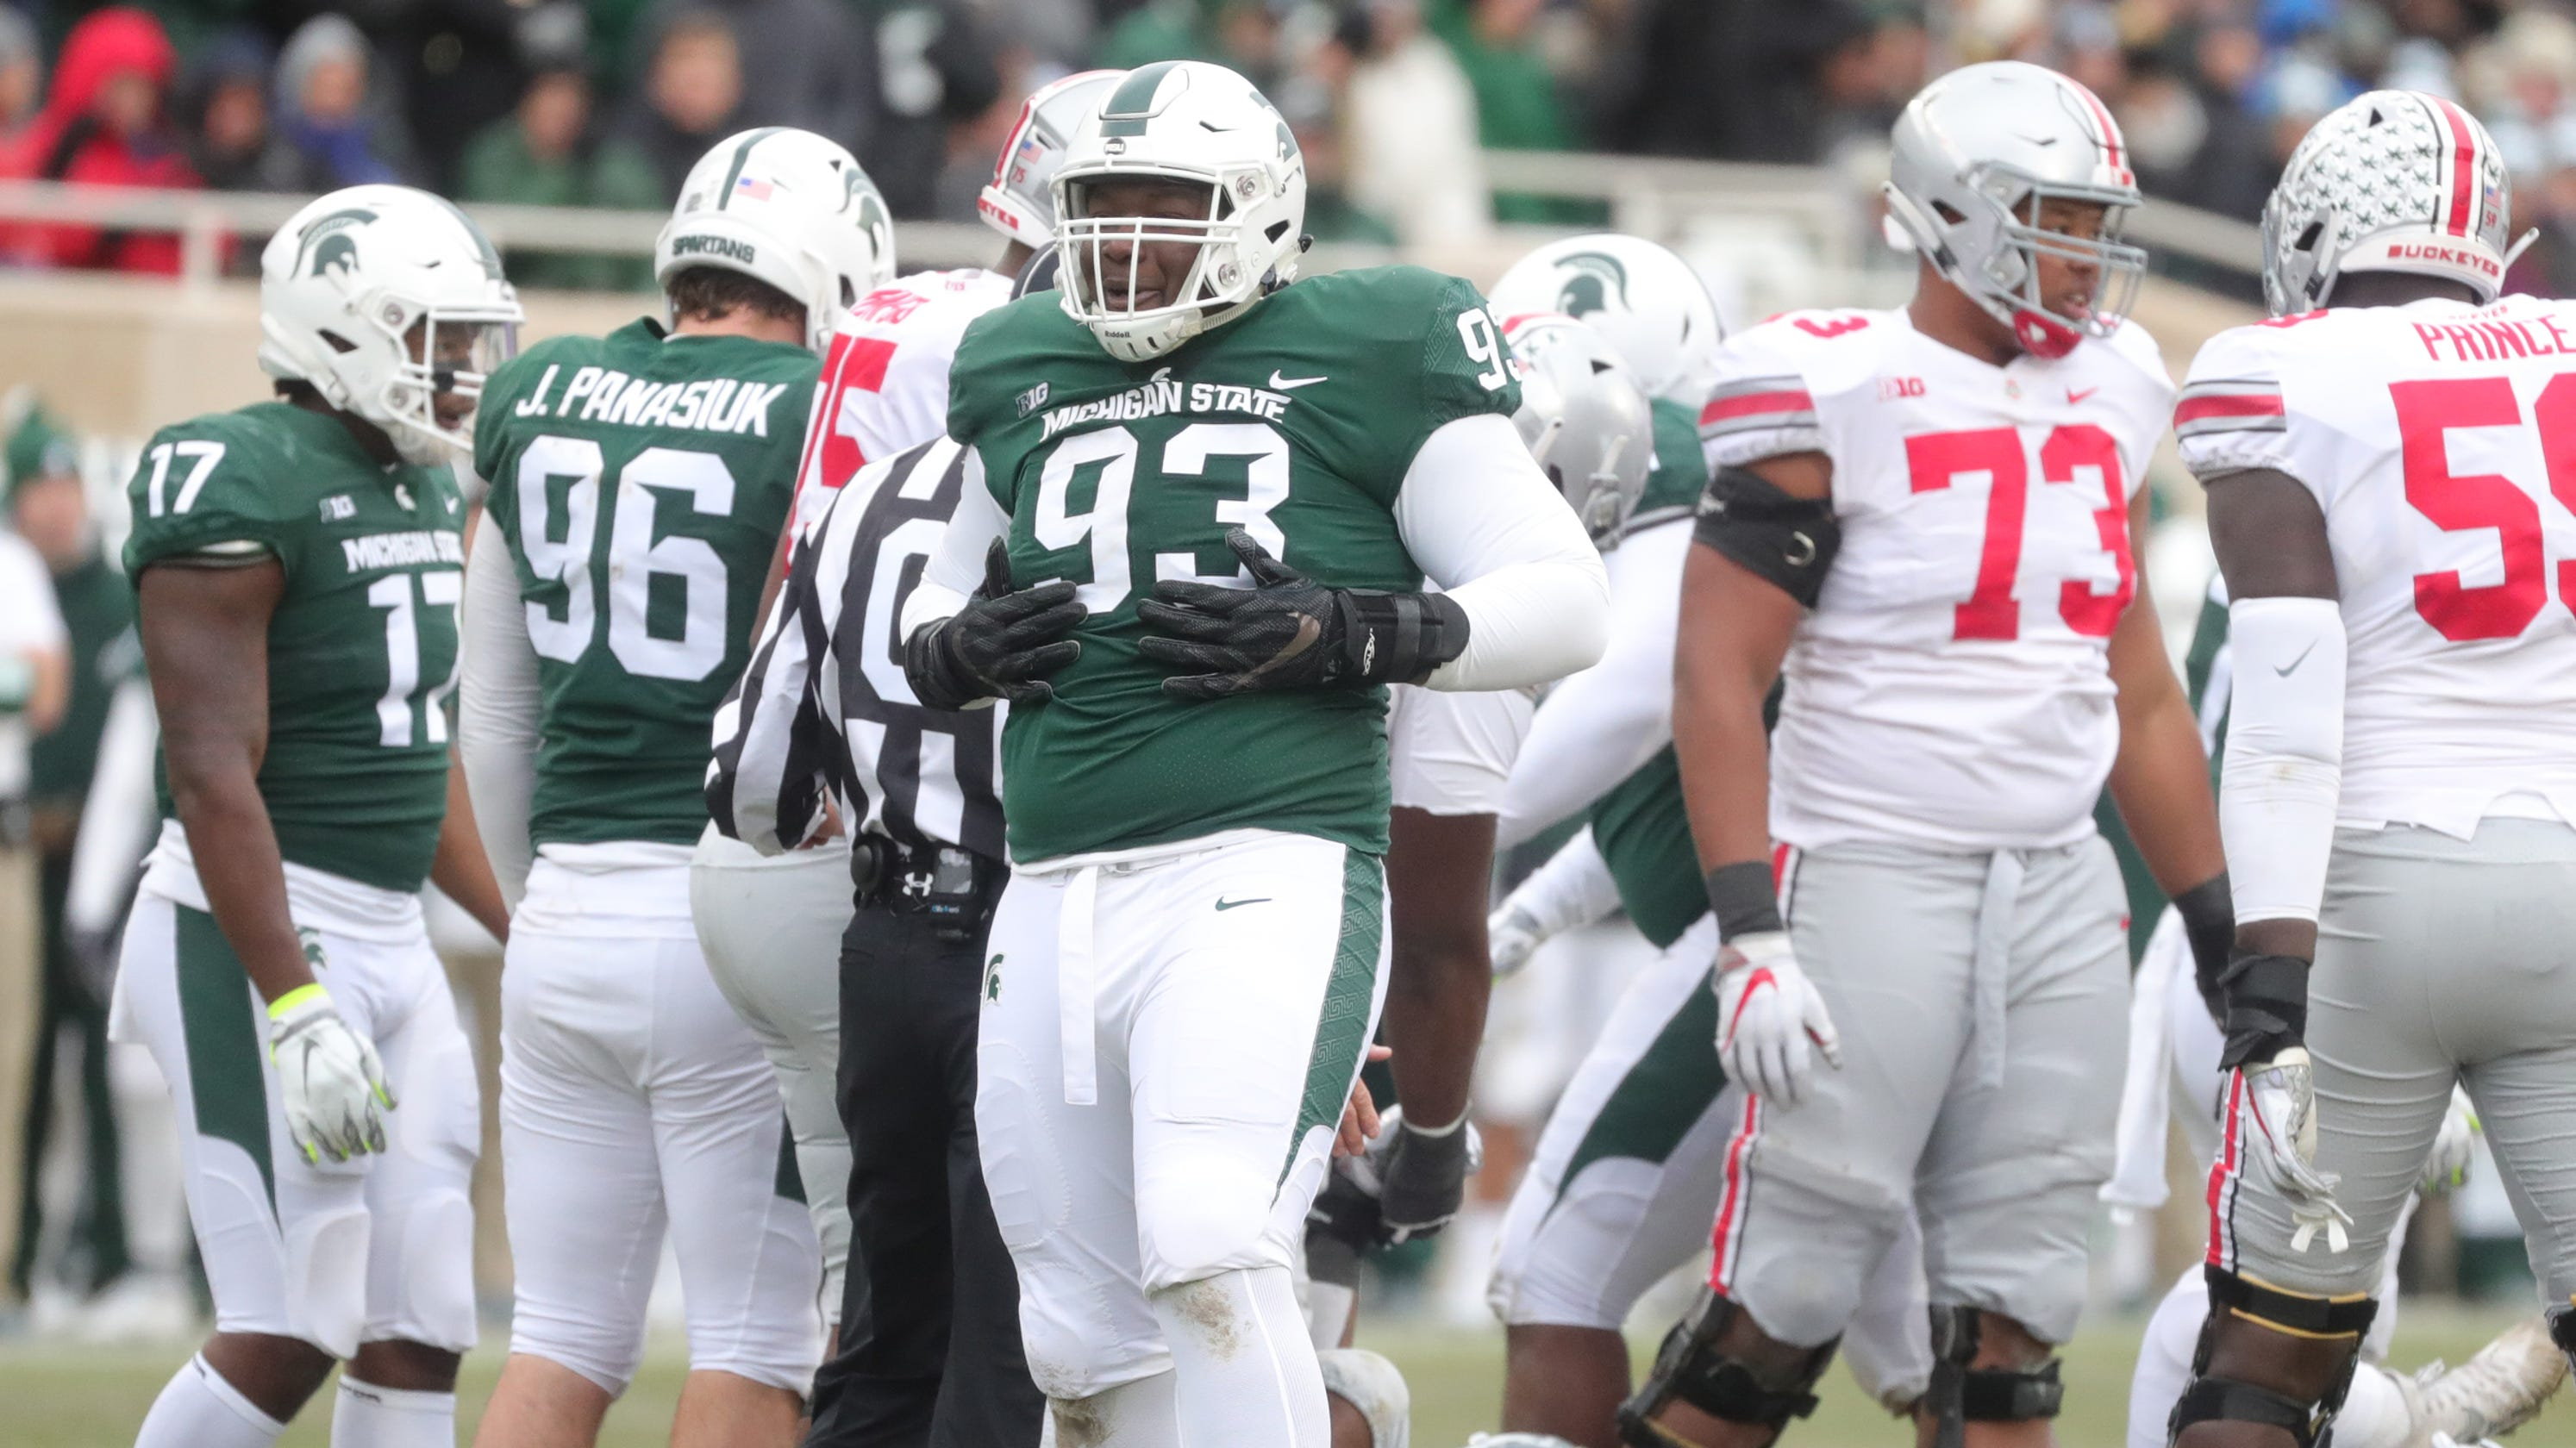 Michigan State football loses to Ohio State, 26-6: Blog recap